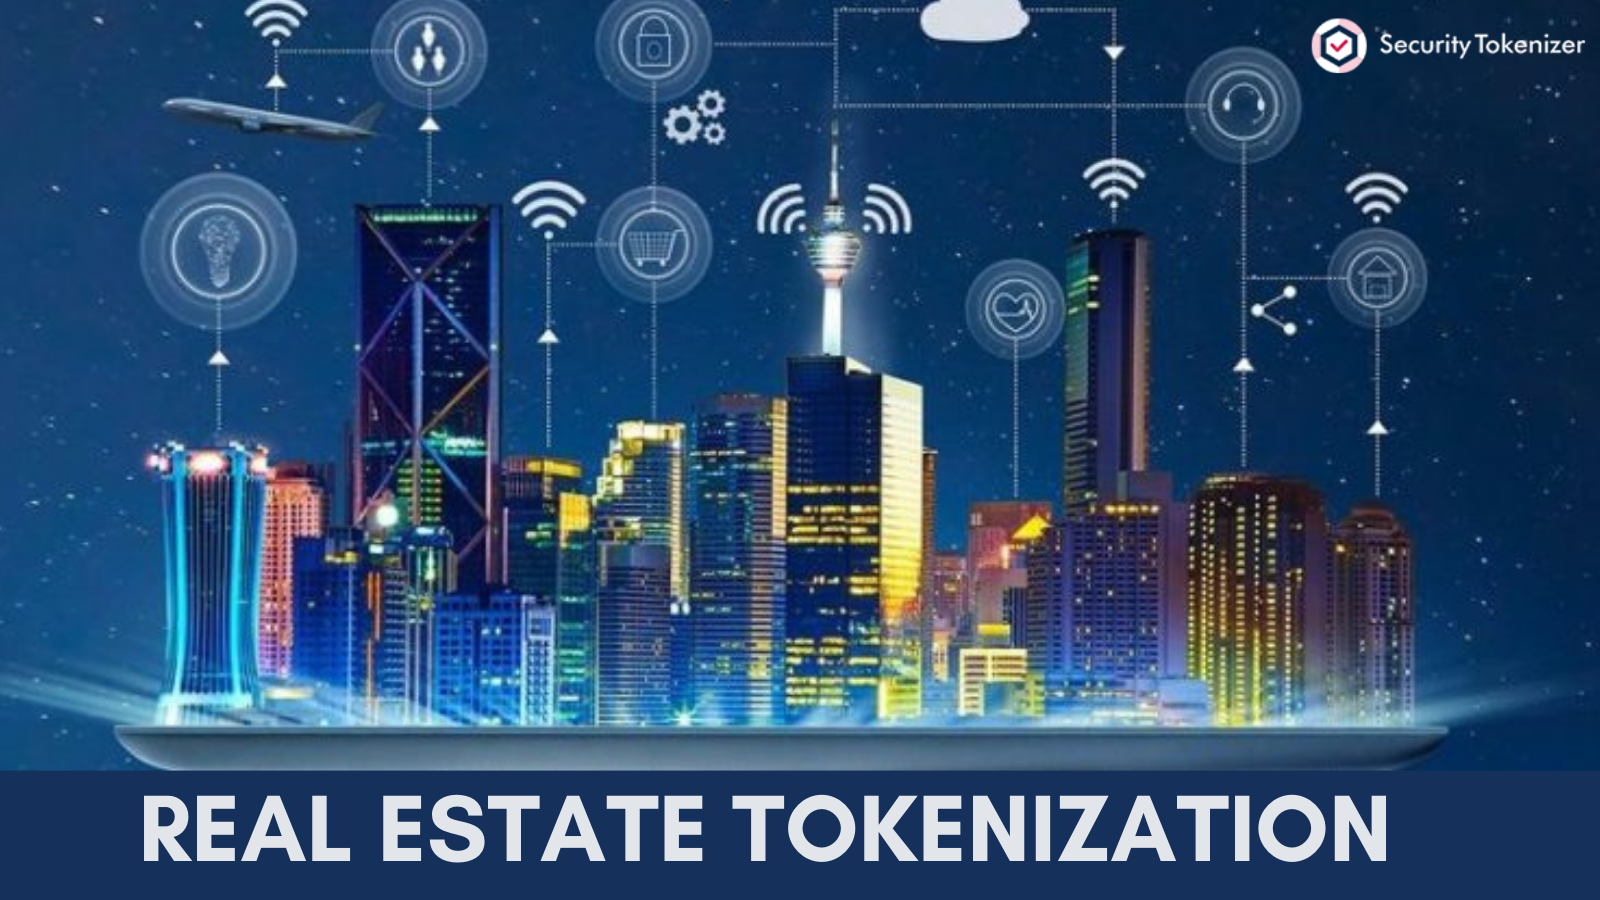 Real Estate Tokenization - An Complete Overview